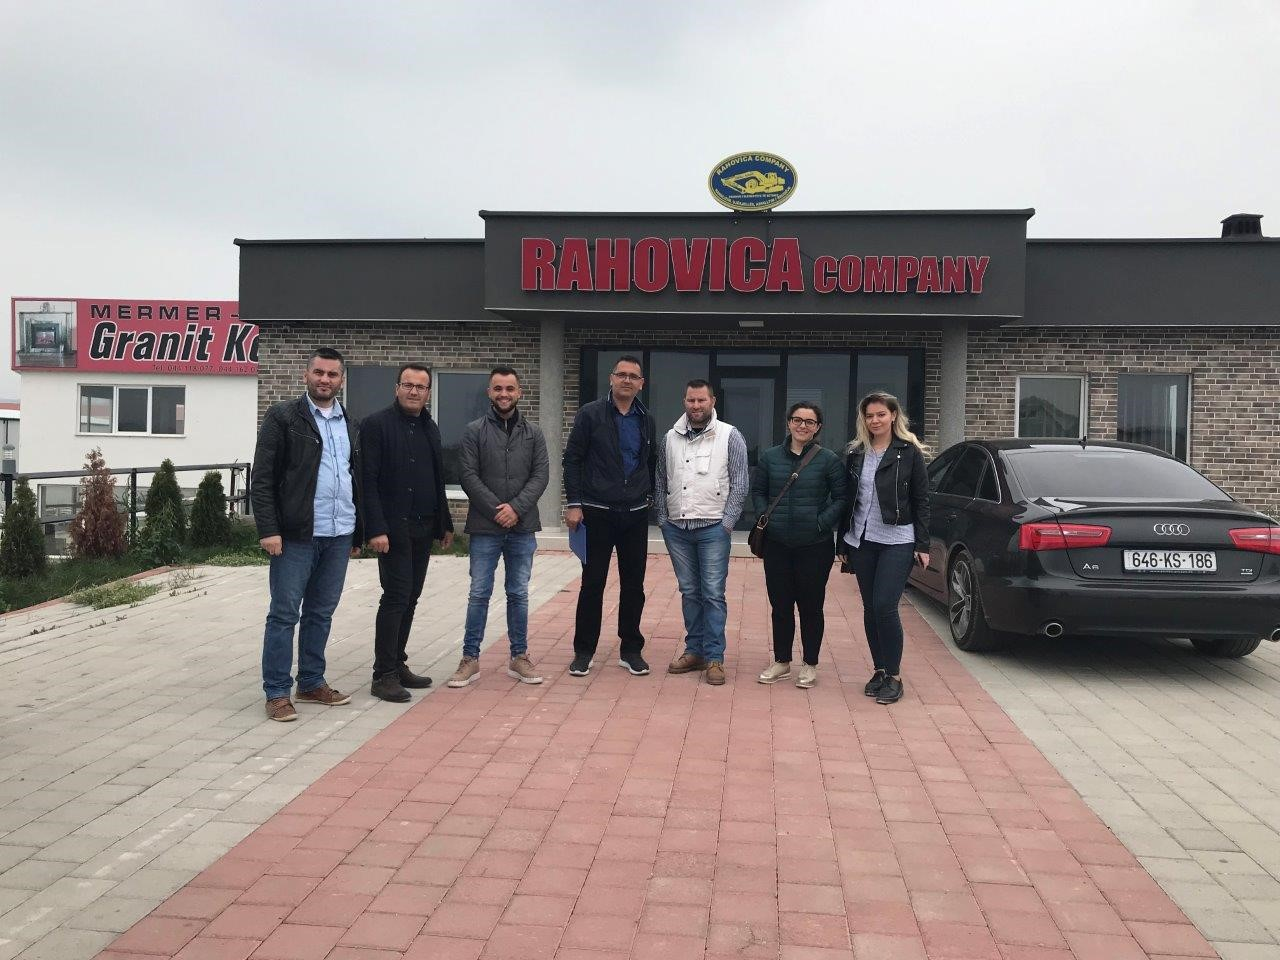 UBT students of Civil Engineering and Infrastructure have been informed about projects and the way how Rahovica Company operates